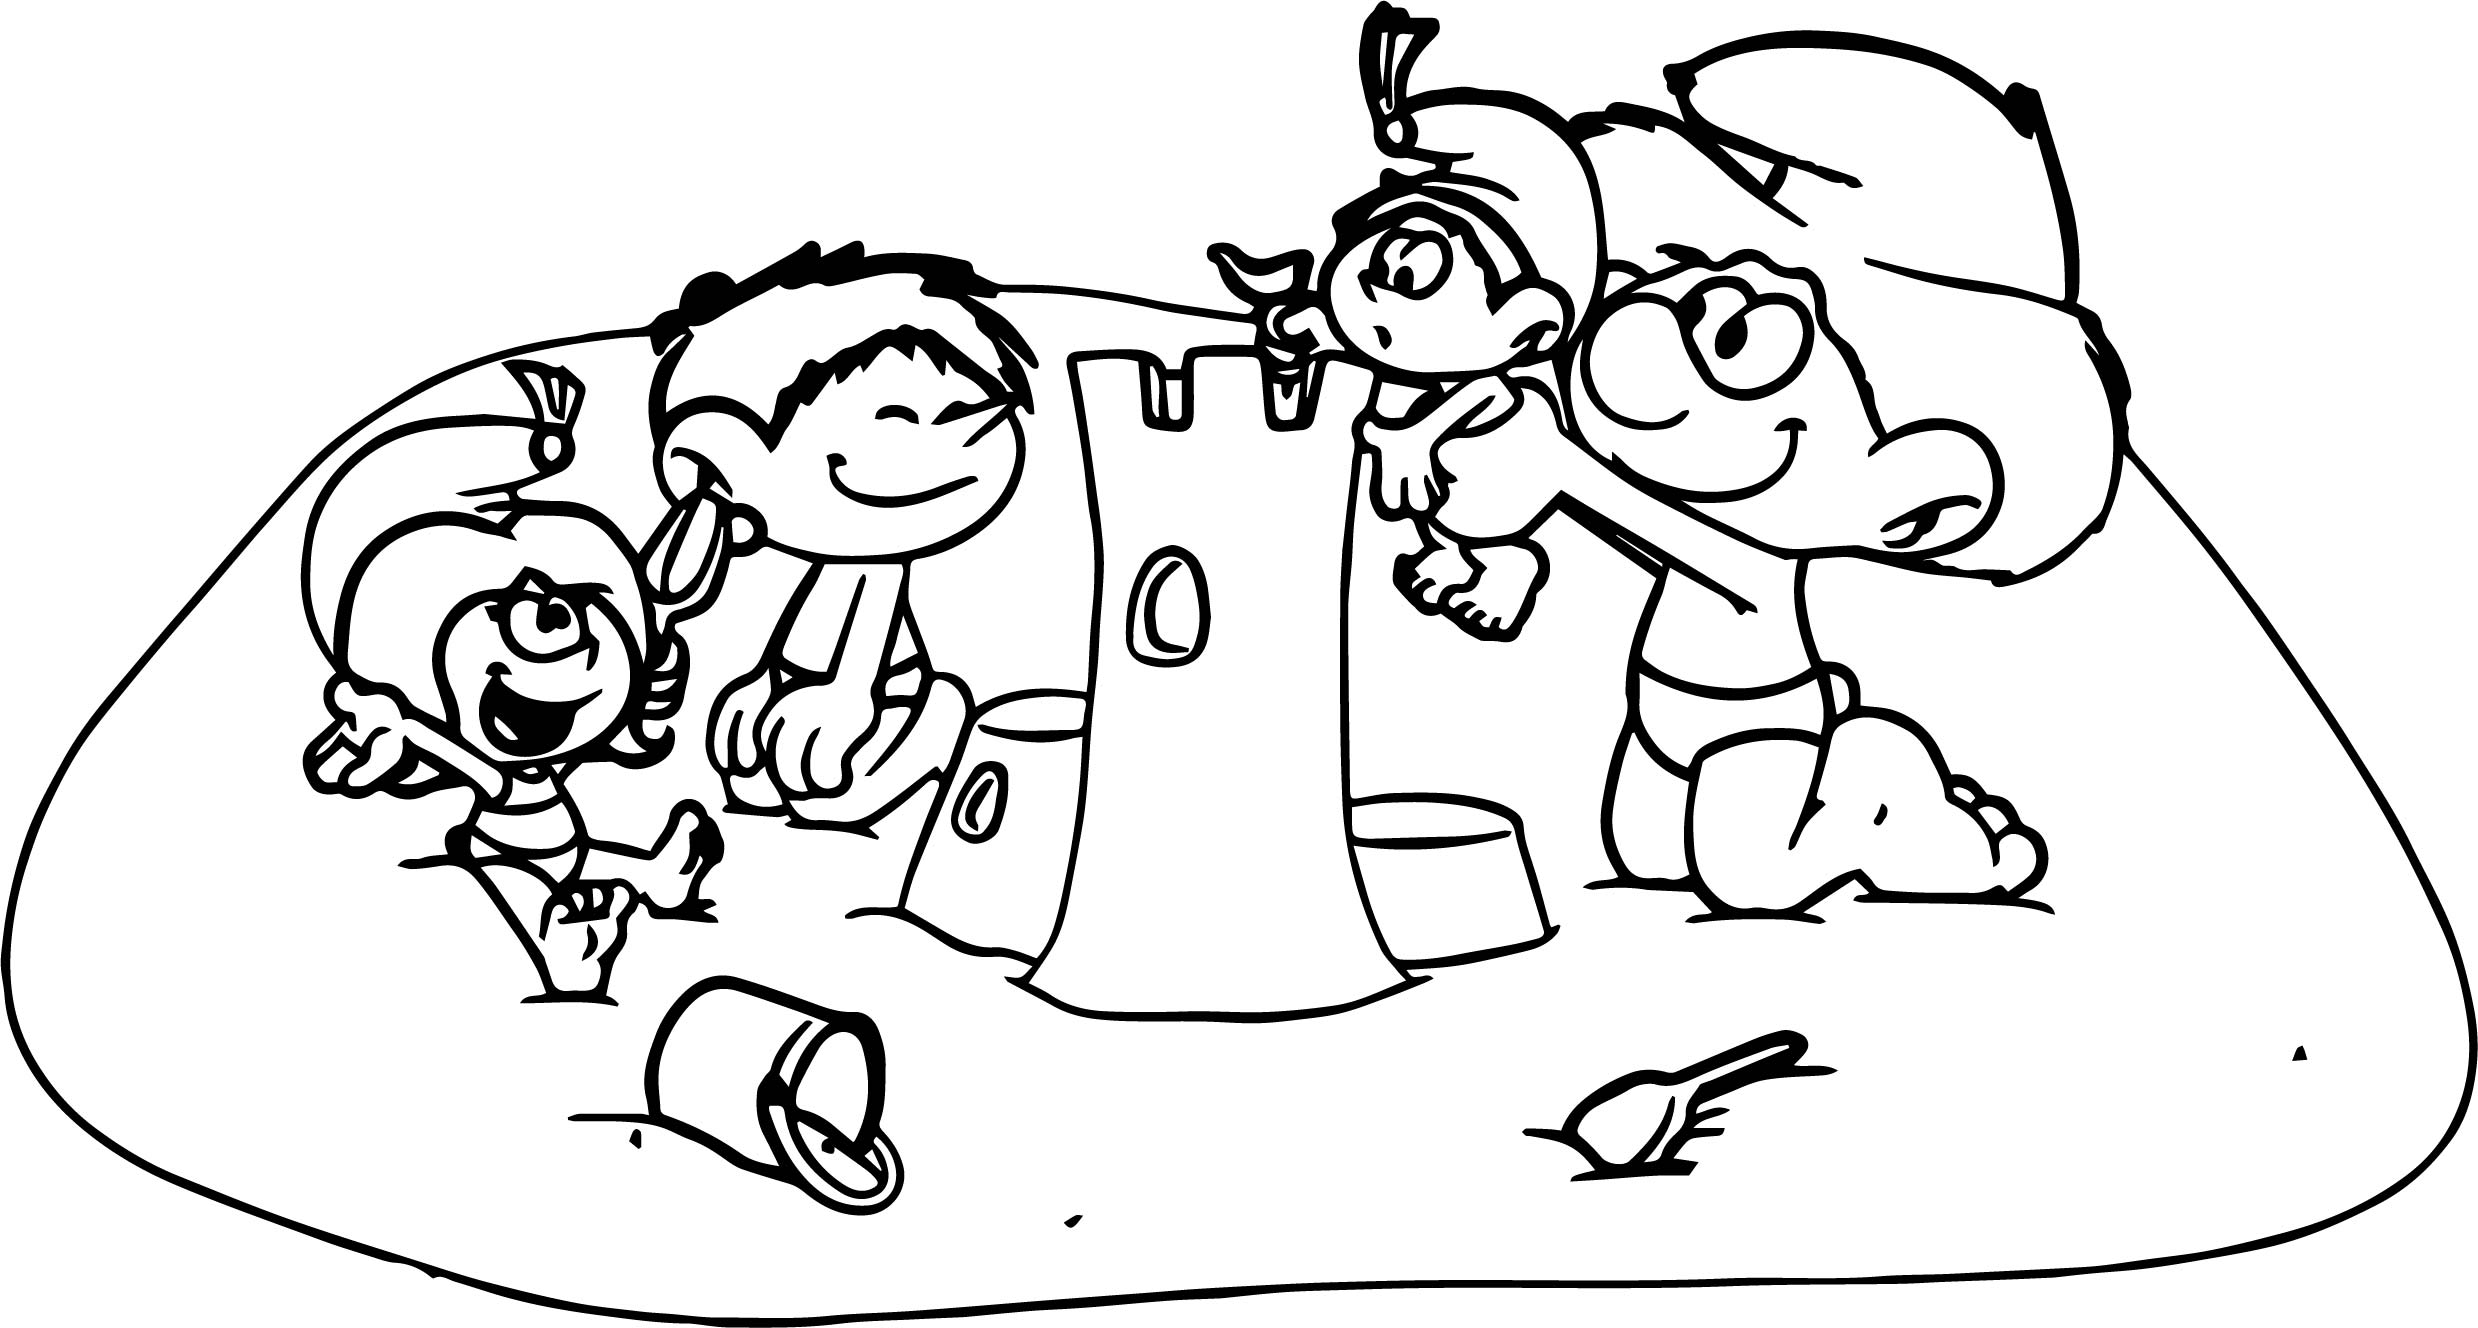 Coloring People Together Coloring Pages